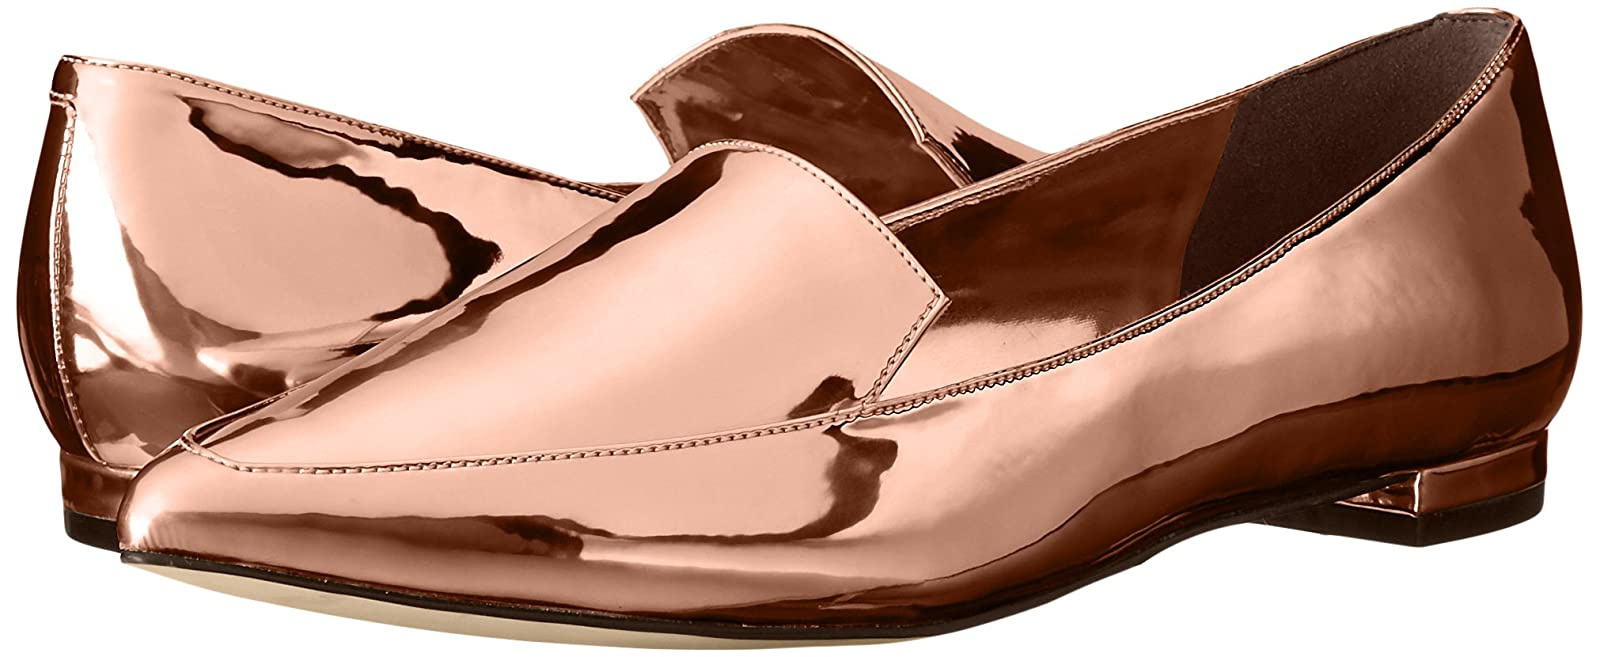 Nine West Women's Abay Patent Pointed Toe Flat US - 6